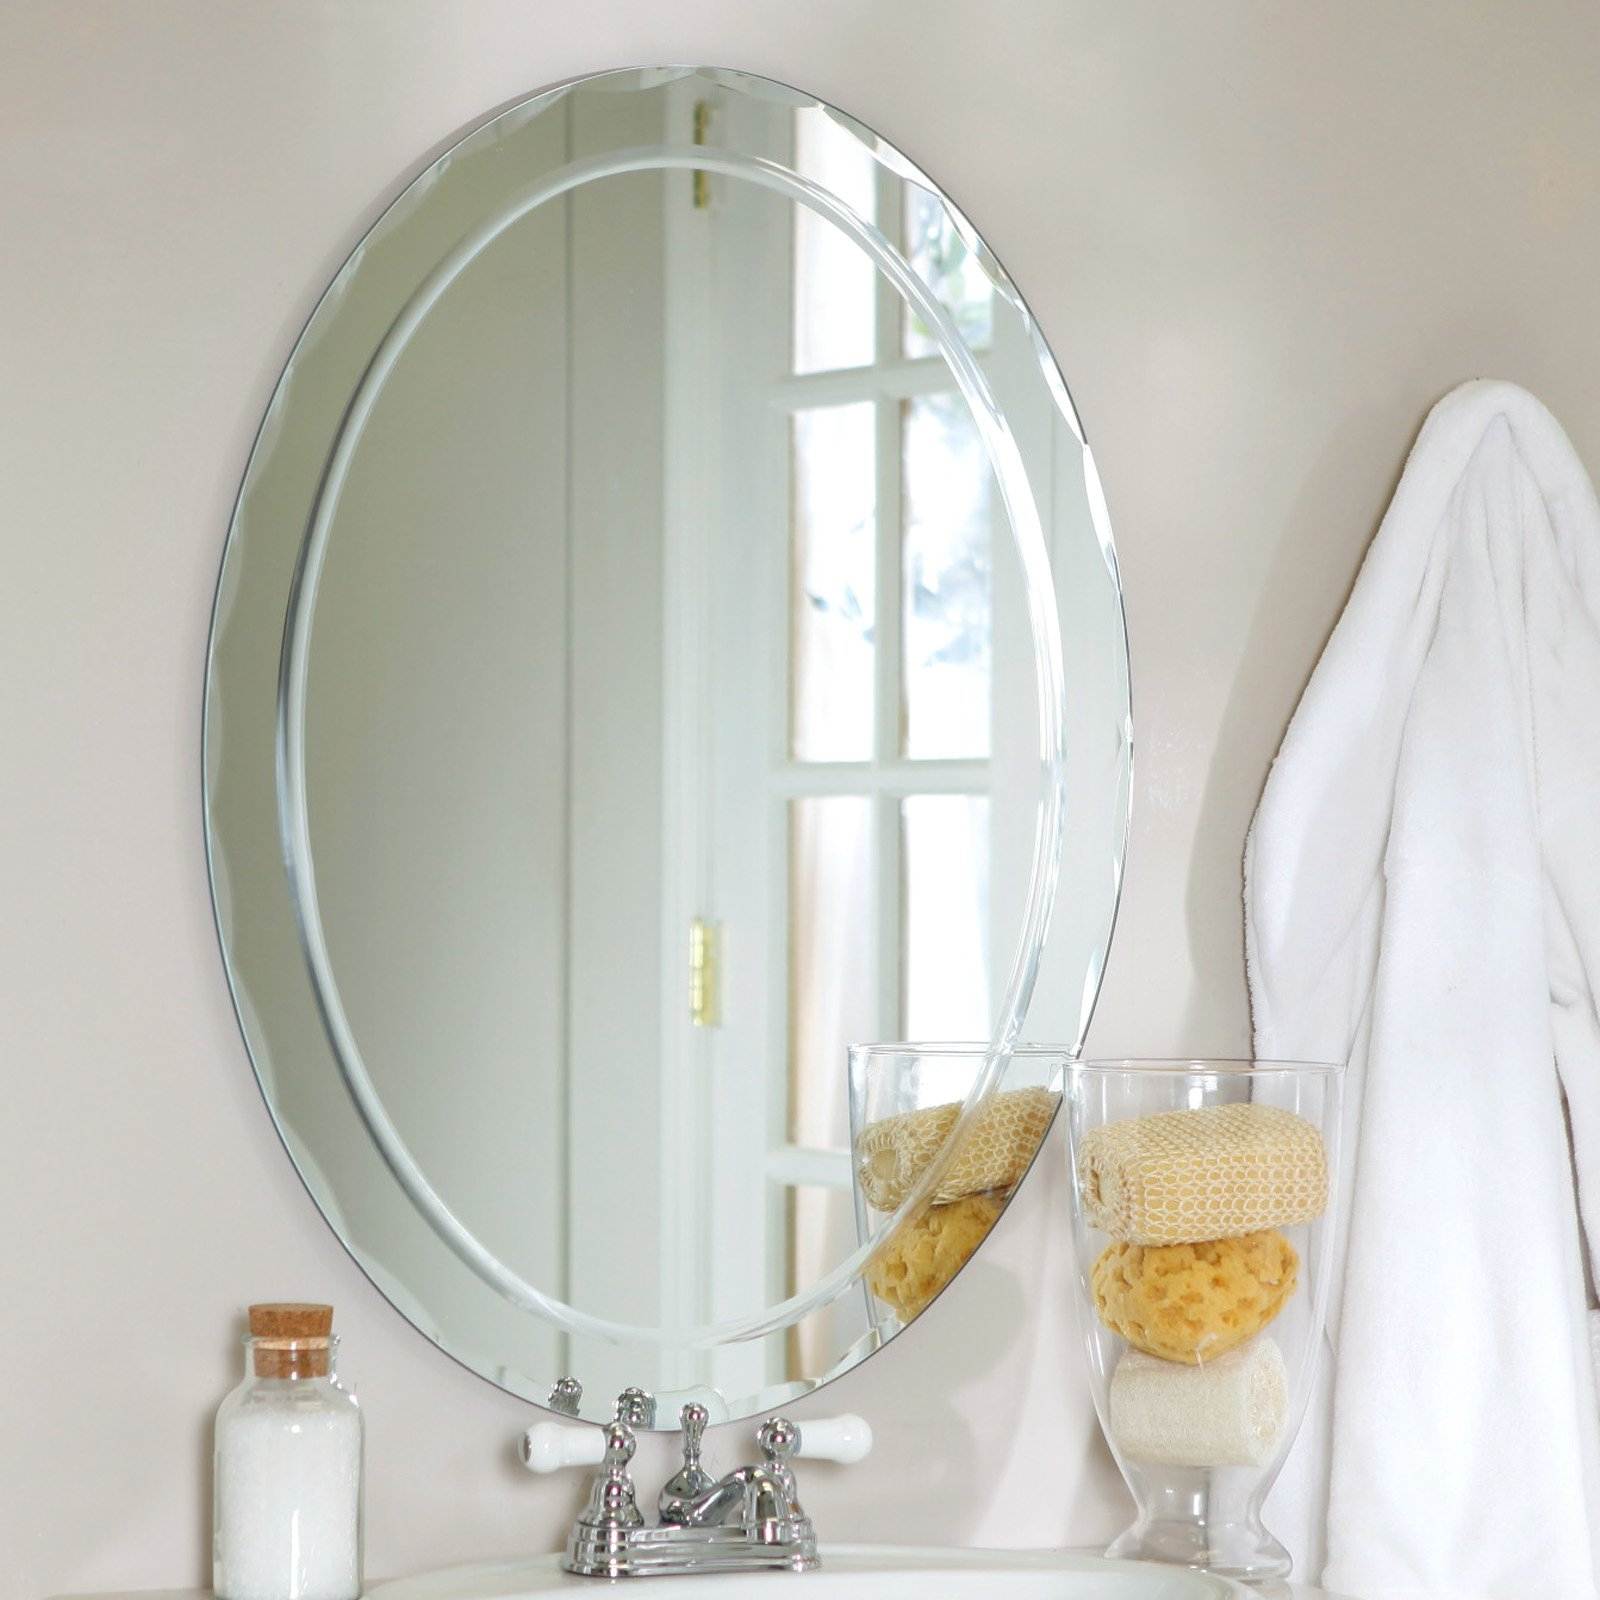 Latest Full Length Oval Wall Mirrors Pertaining To Mirrors Mirror Candle Bathroom Tall Diy Full Vintage Oval (Gallery 18 of 20)